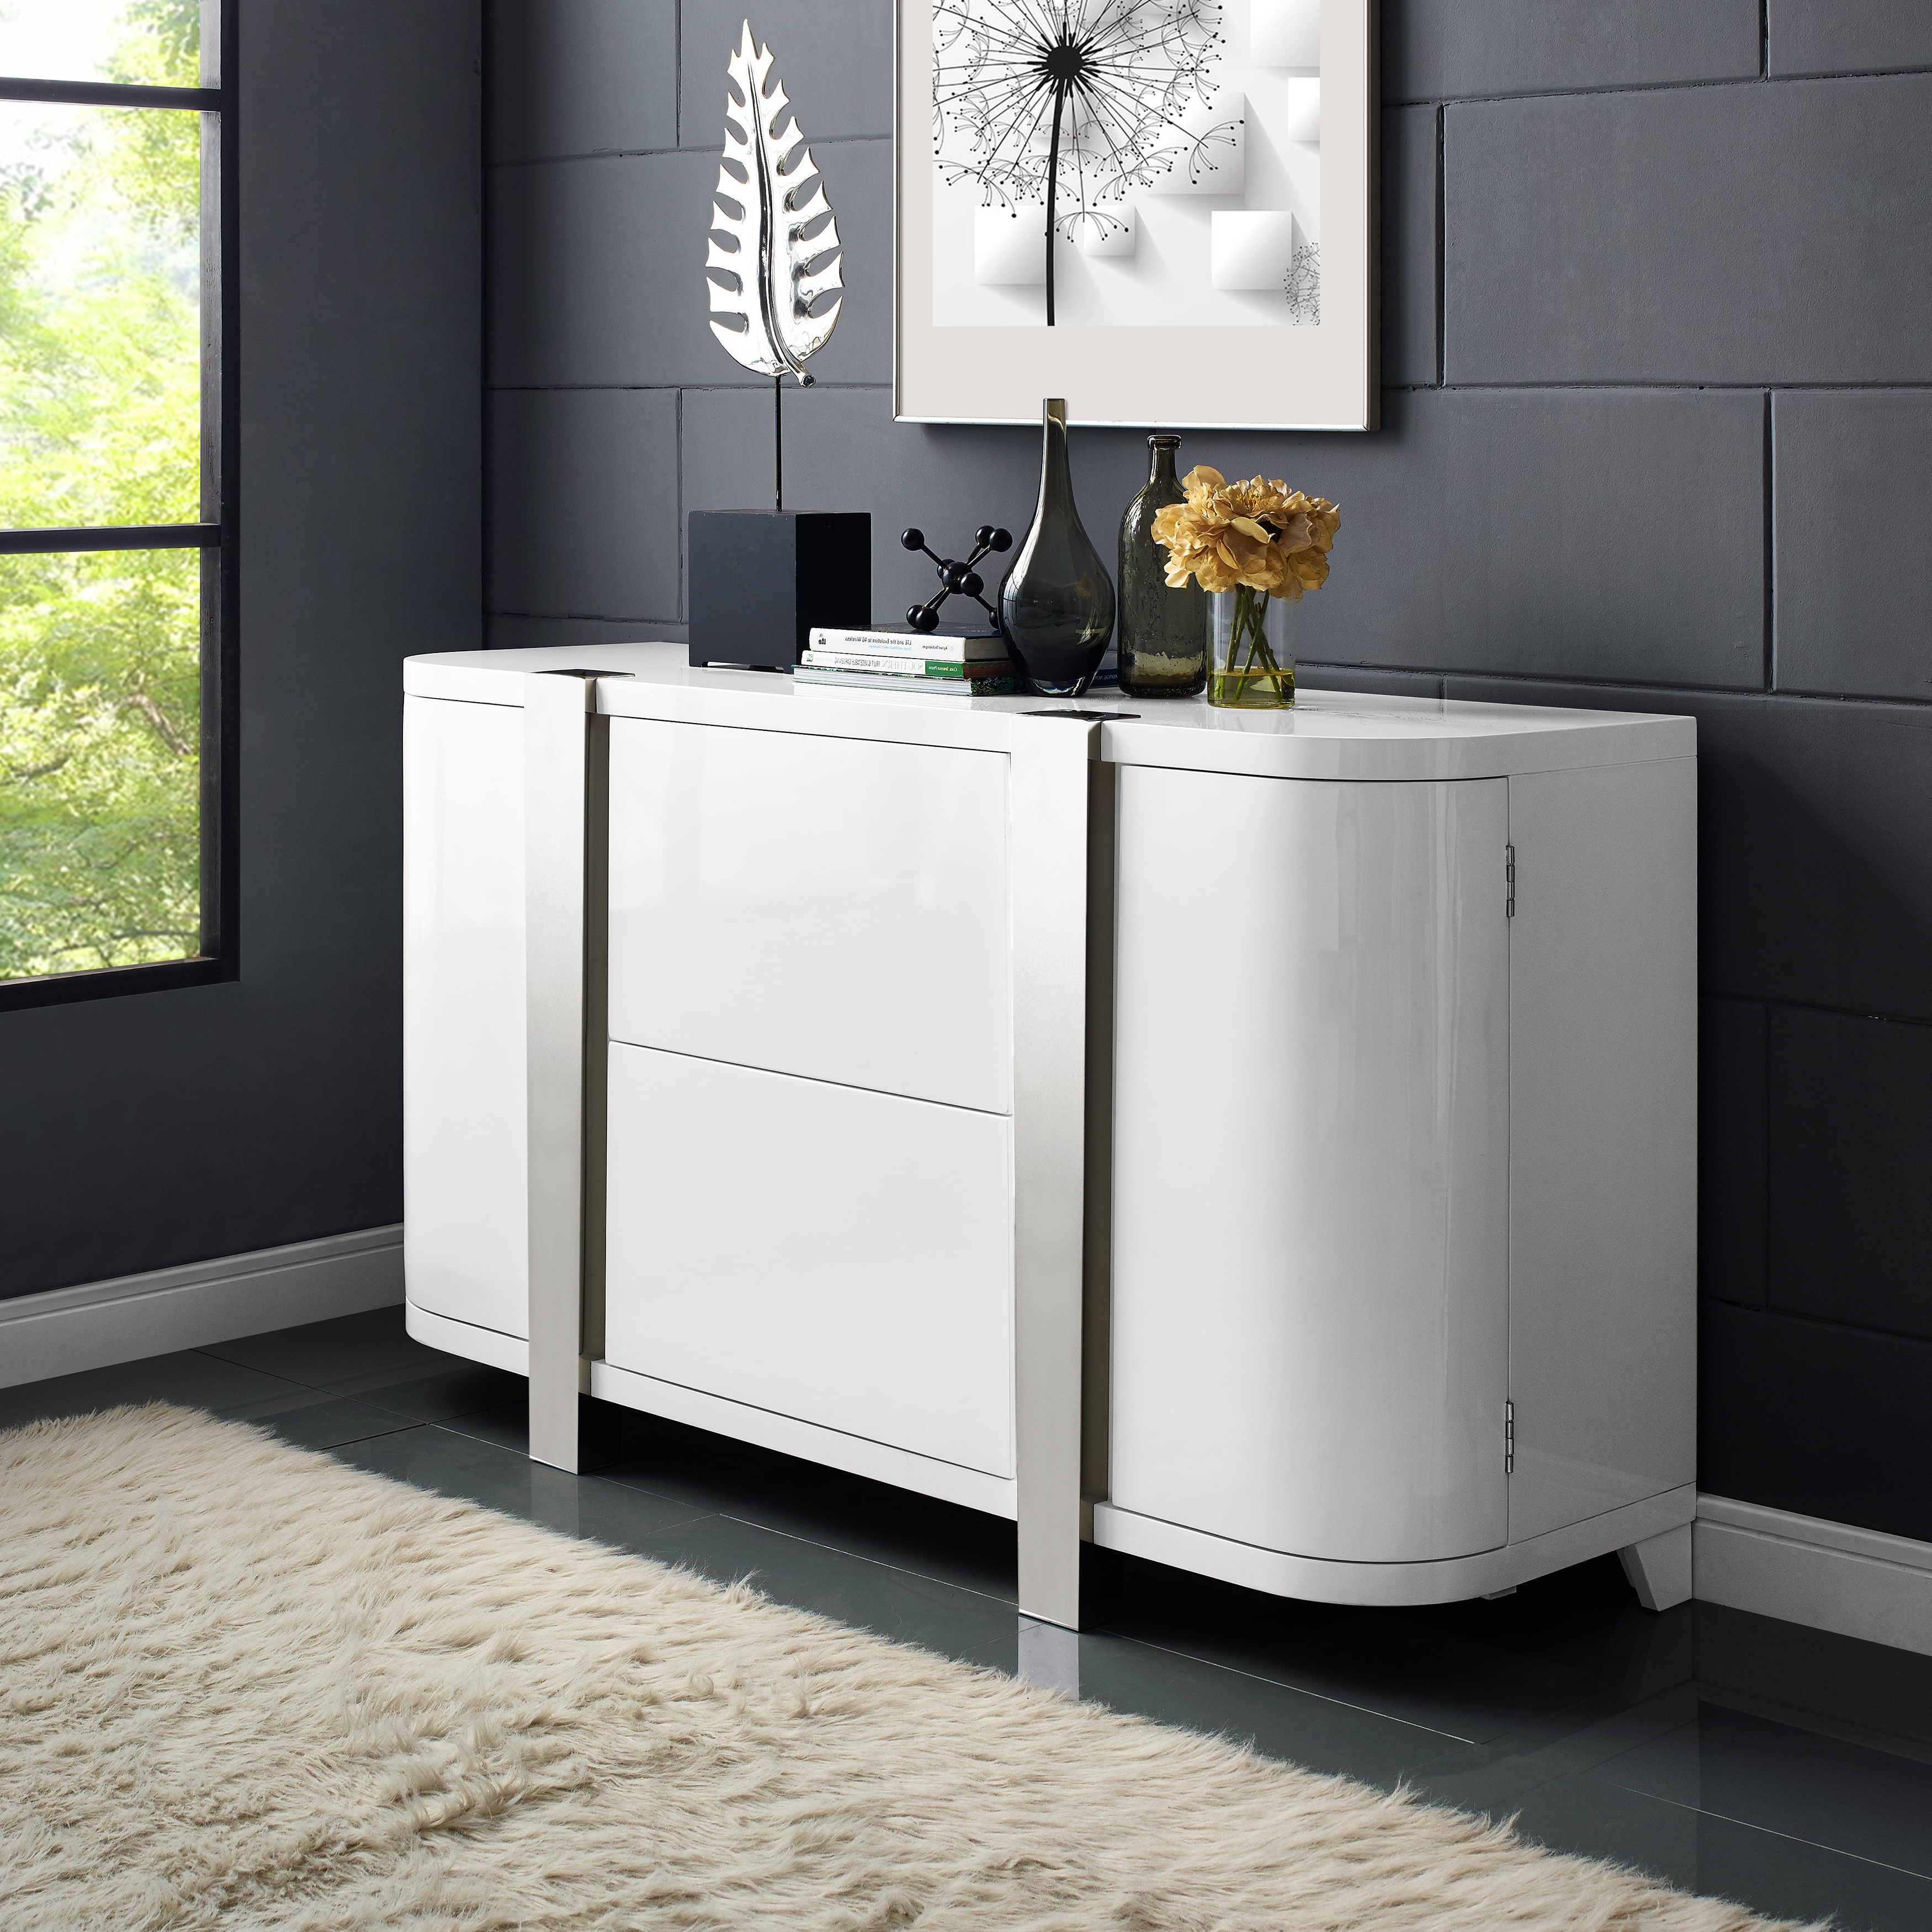 High Gloss White Sideboard   Wayfair Inside Thite Sideboards (View 2 of 20)